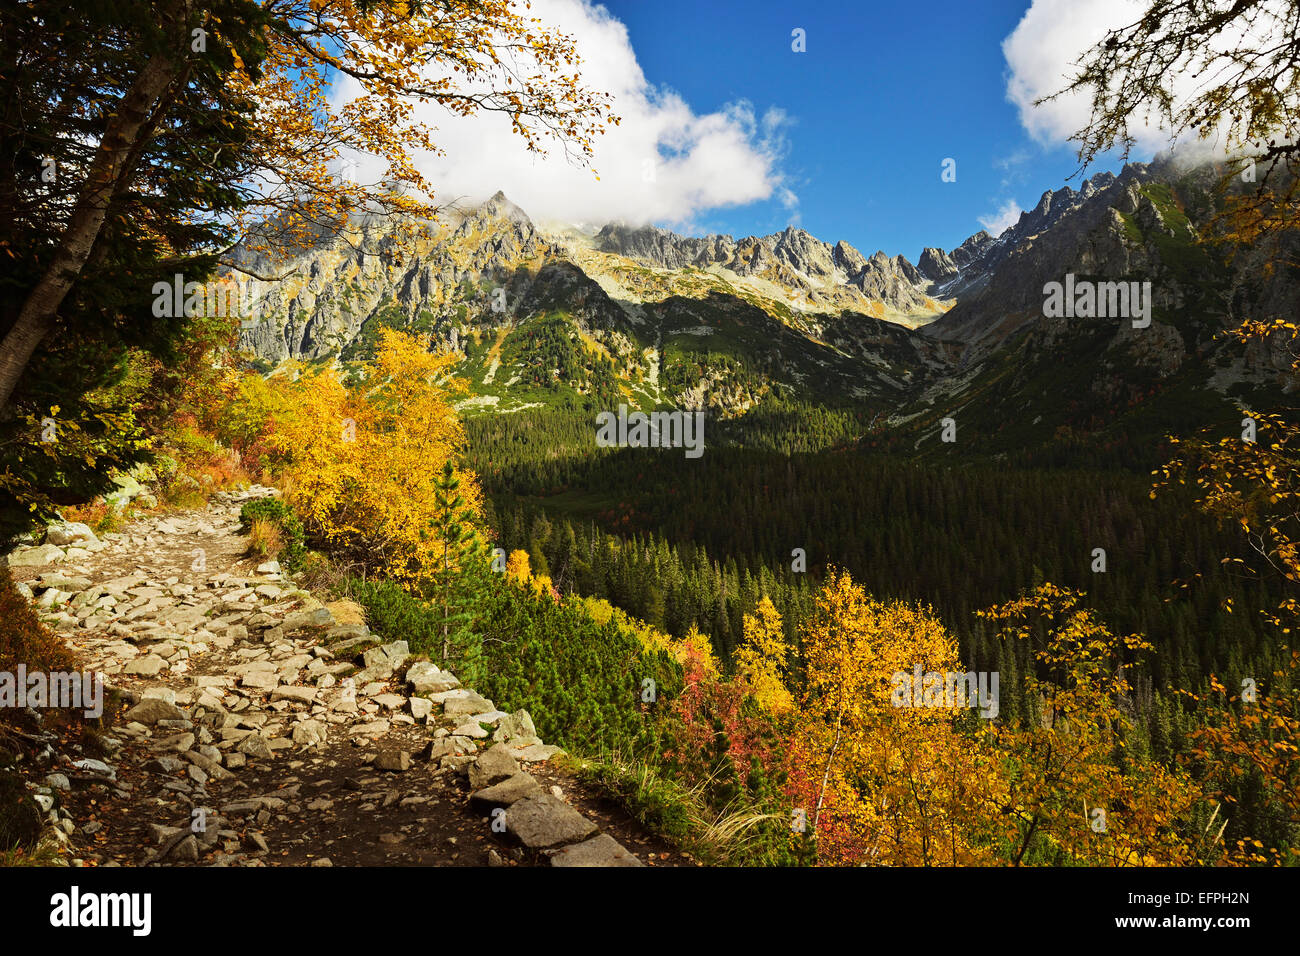 Footpath in the Strbske Pleso area, High Tatras (Vysoke Tatry), Slovakia, Europe - Stock Image